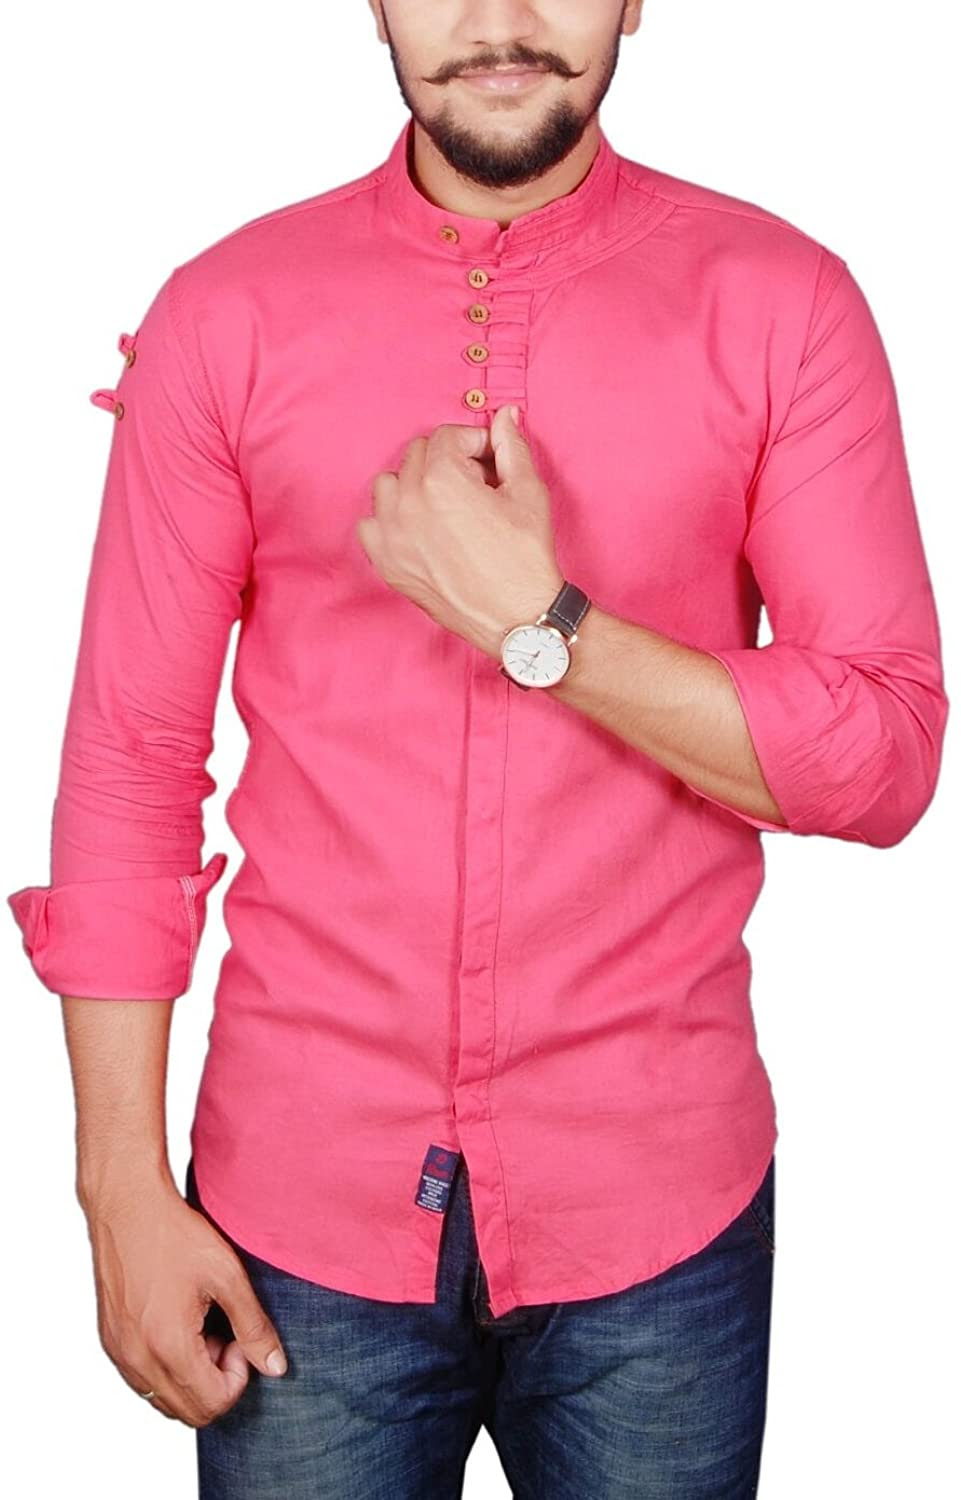 Deals on Vero Lie Men's Casual Shirt